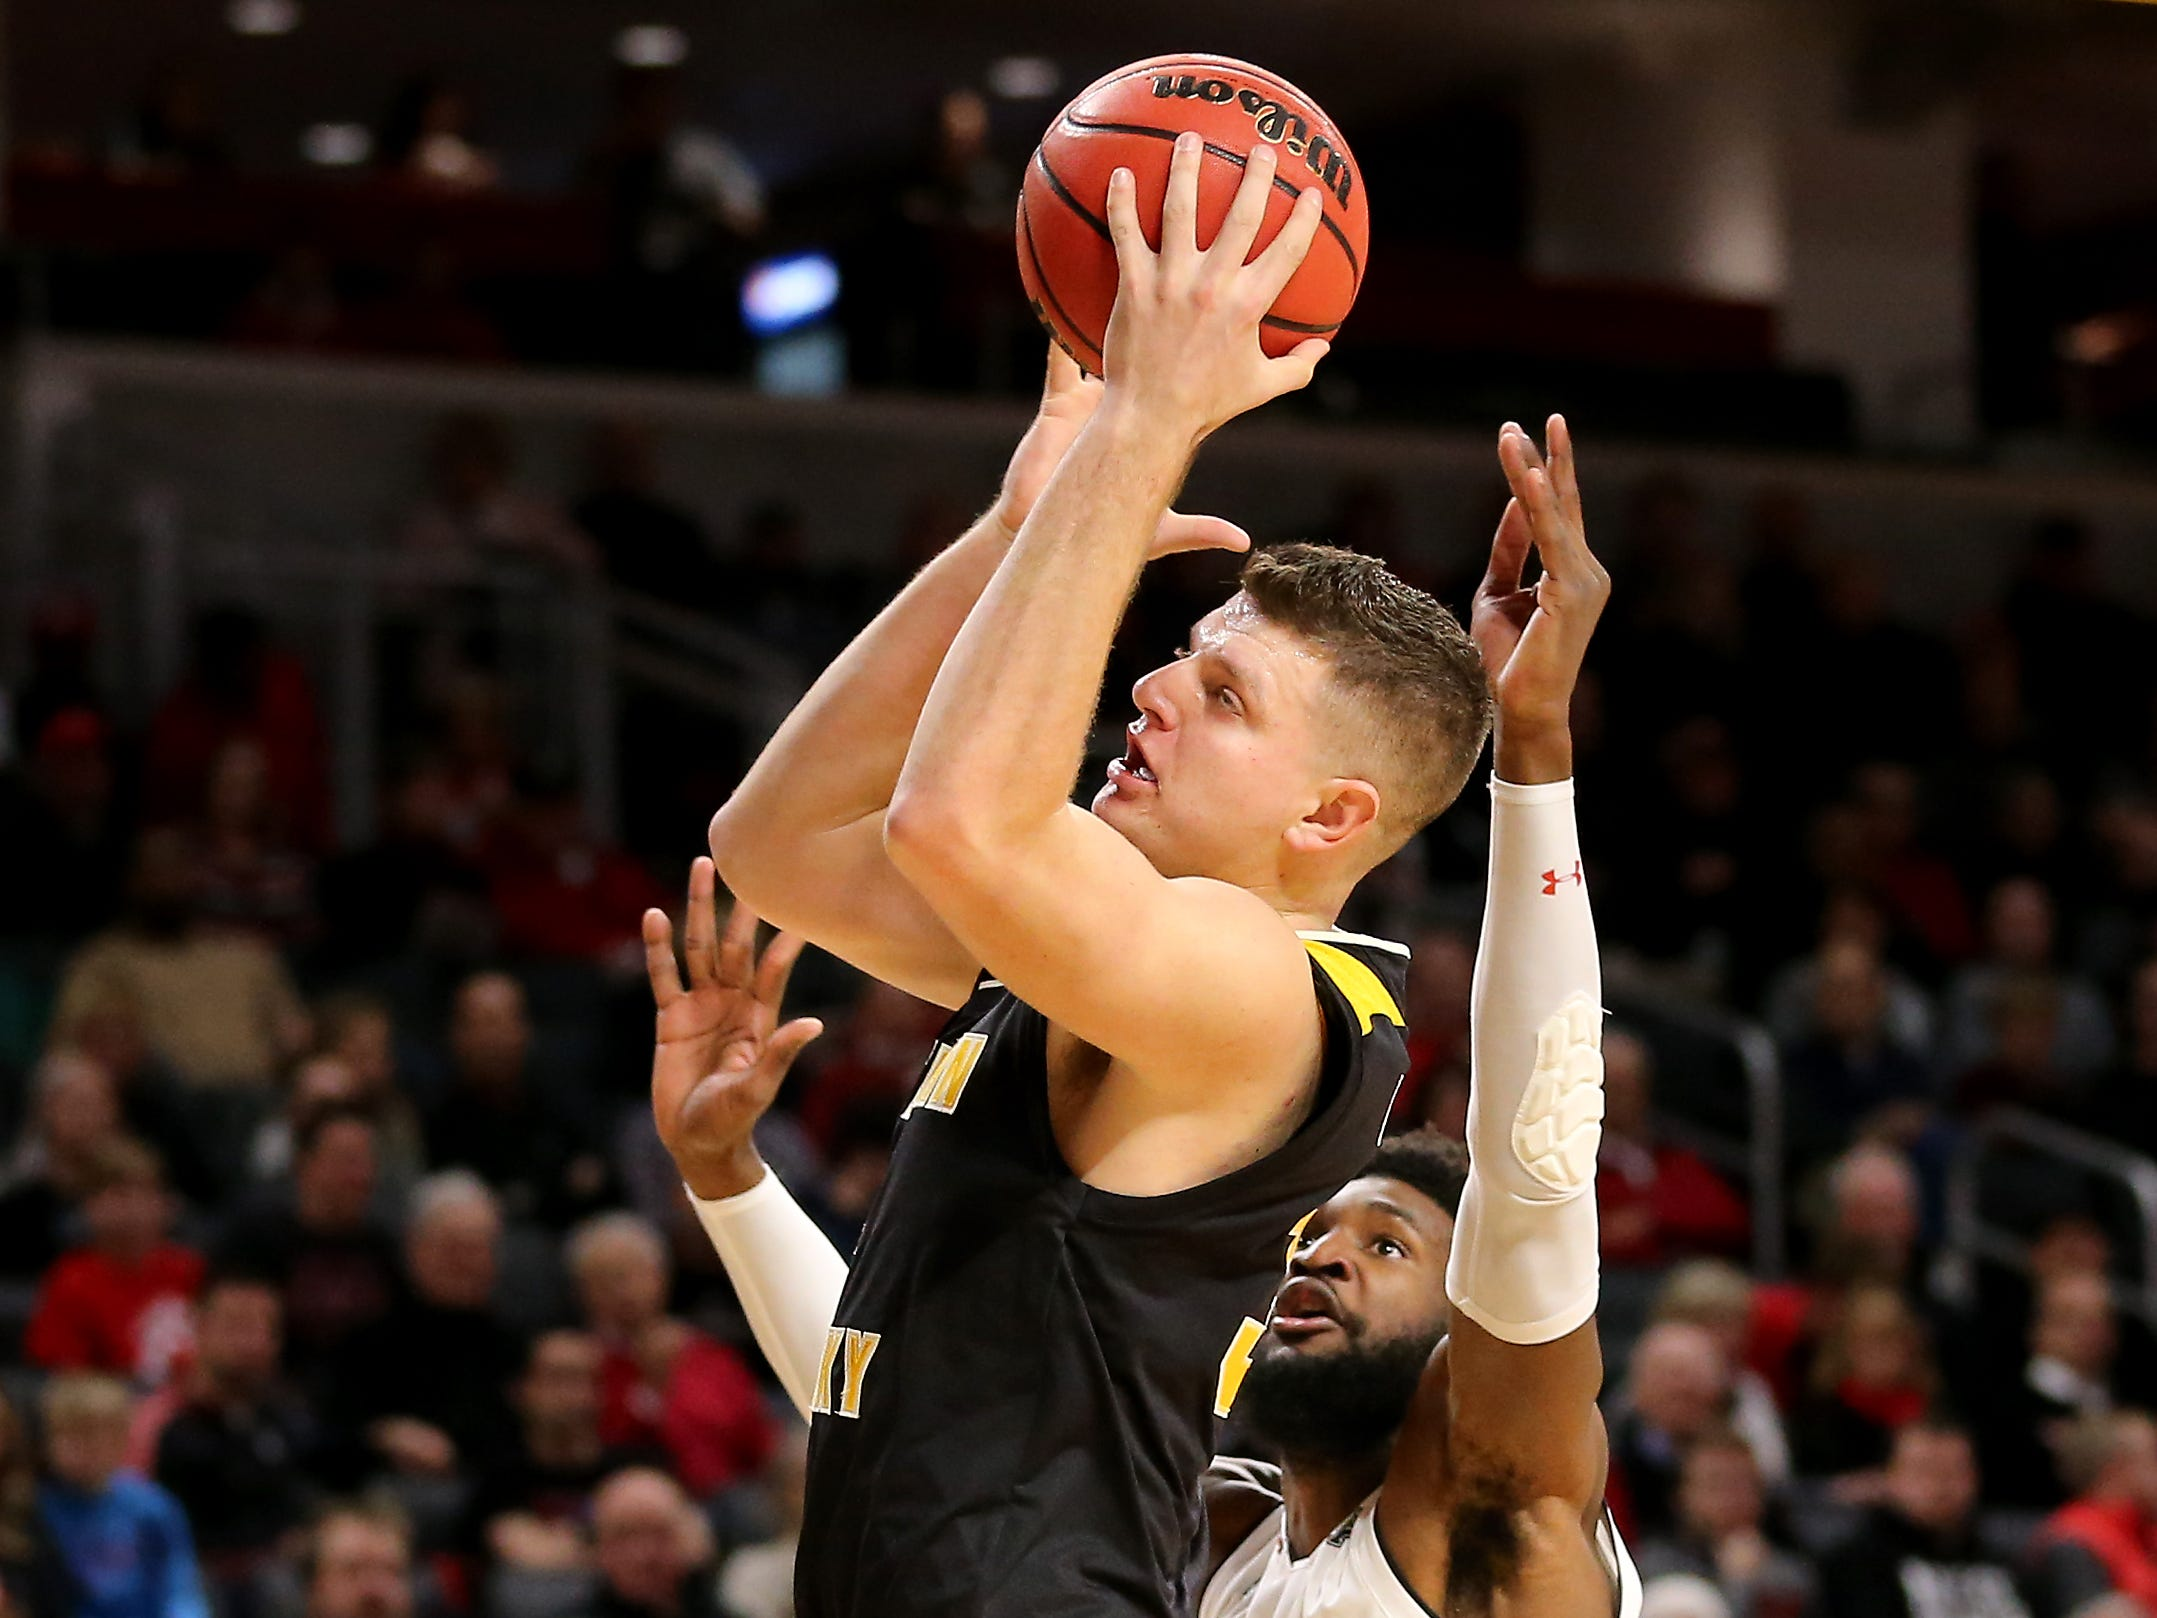 Northern Kentucky Norse forward Drew McDonald (34) collects a pass over Cincinnati Bearcats forward Eliel Nsoseme (22) in the first half of an NCAA college basketball game, Tuesday, Dec. 4, 2018, at Fifth Third Arena in Cincinnati.